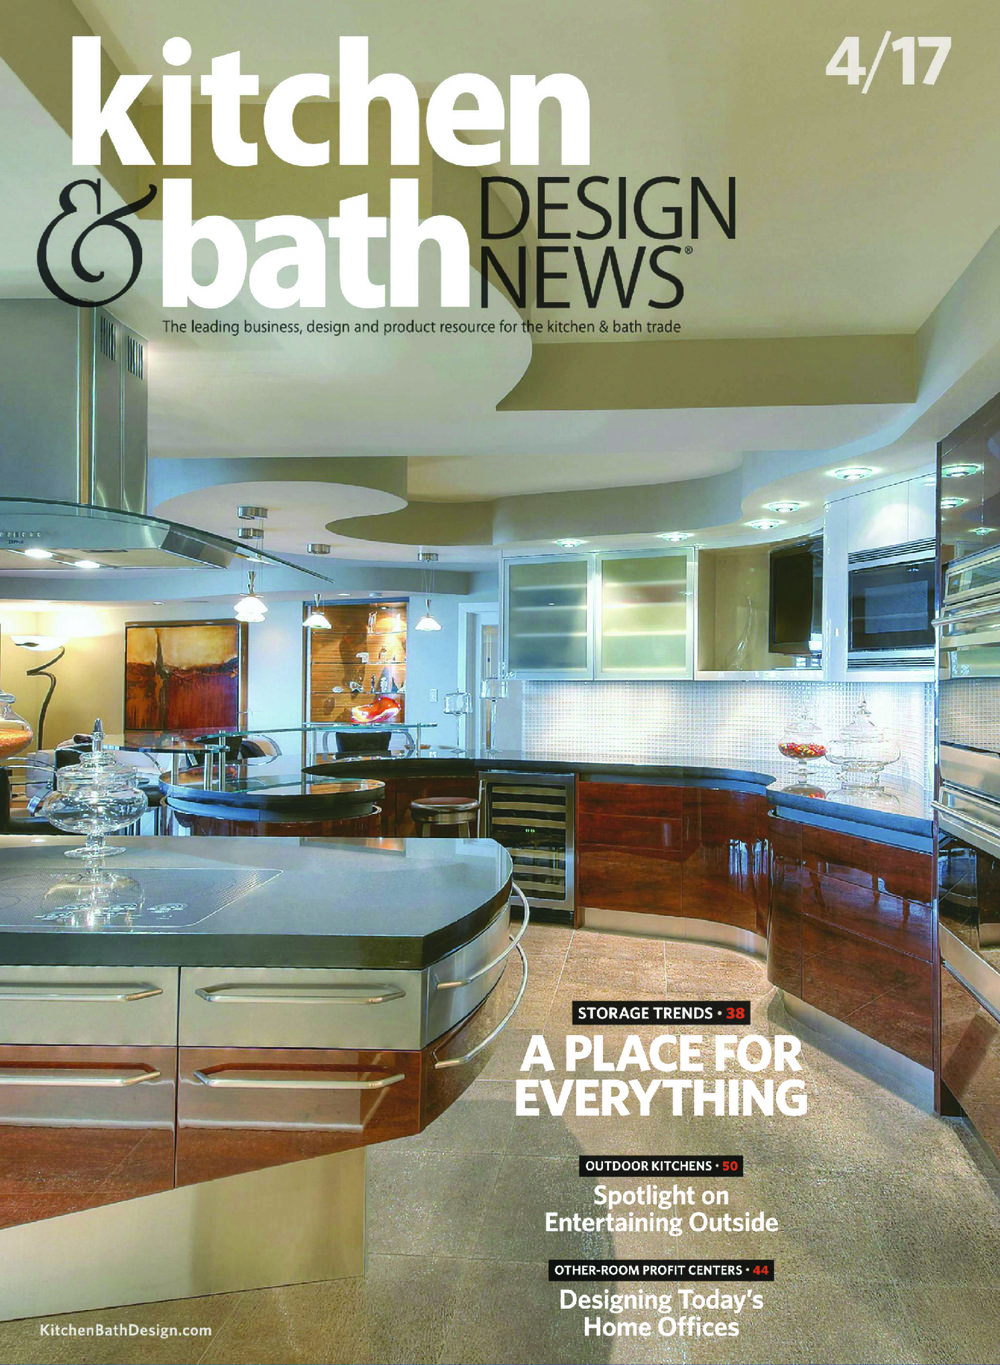 KitchenBathDesign_April.jpg